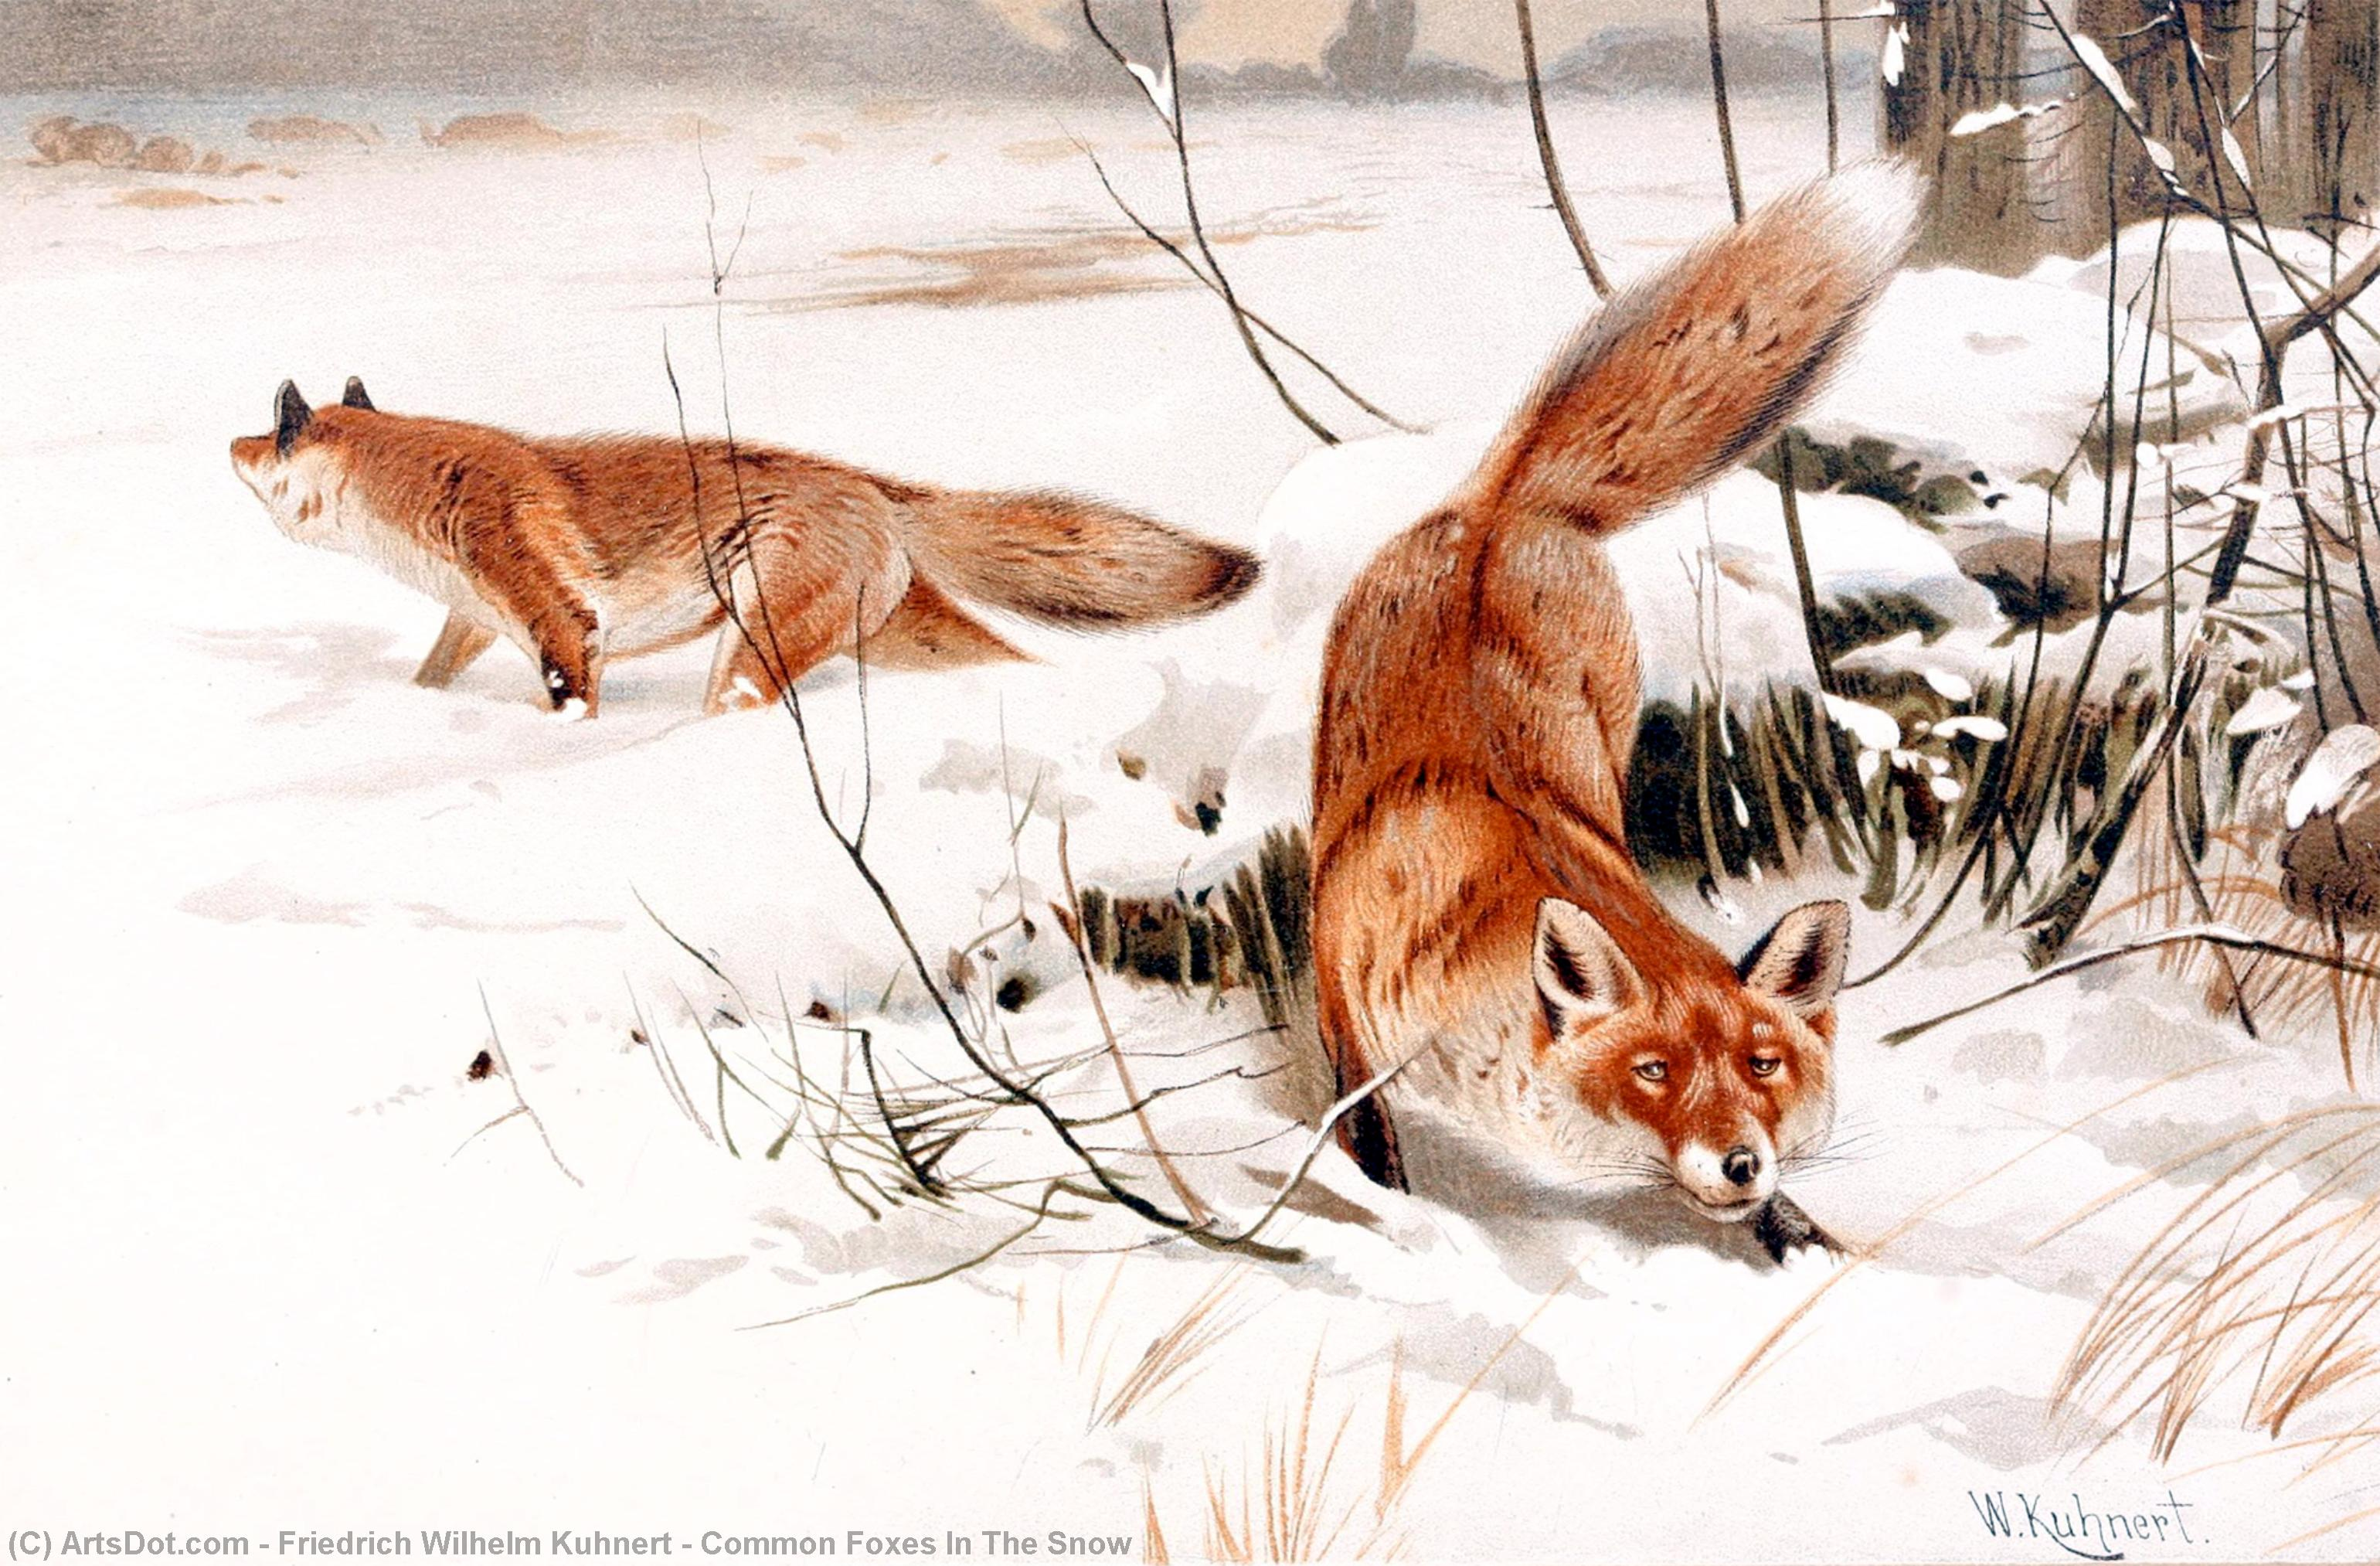 Wikioo.org - The Encyclopedia of Fine Arts - Painting, Artwork by Friedrich Wilhelm Kuhnert - Common Foxes In The Snow